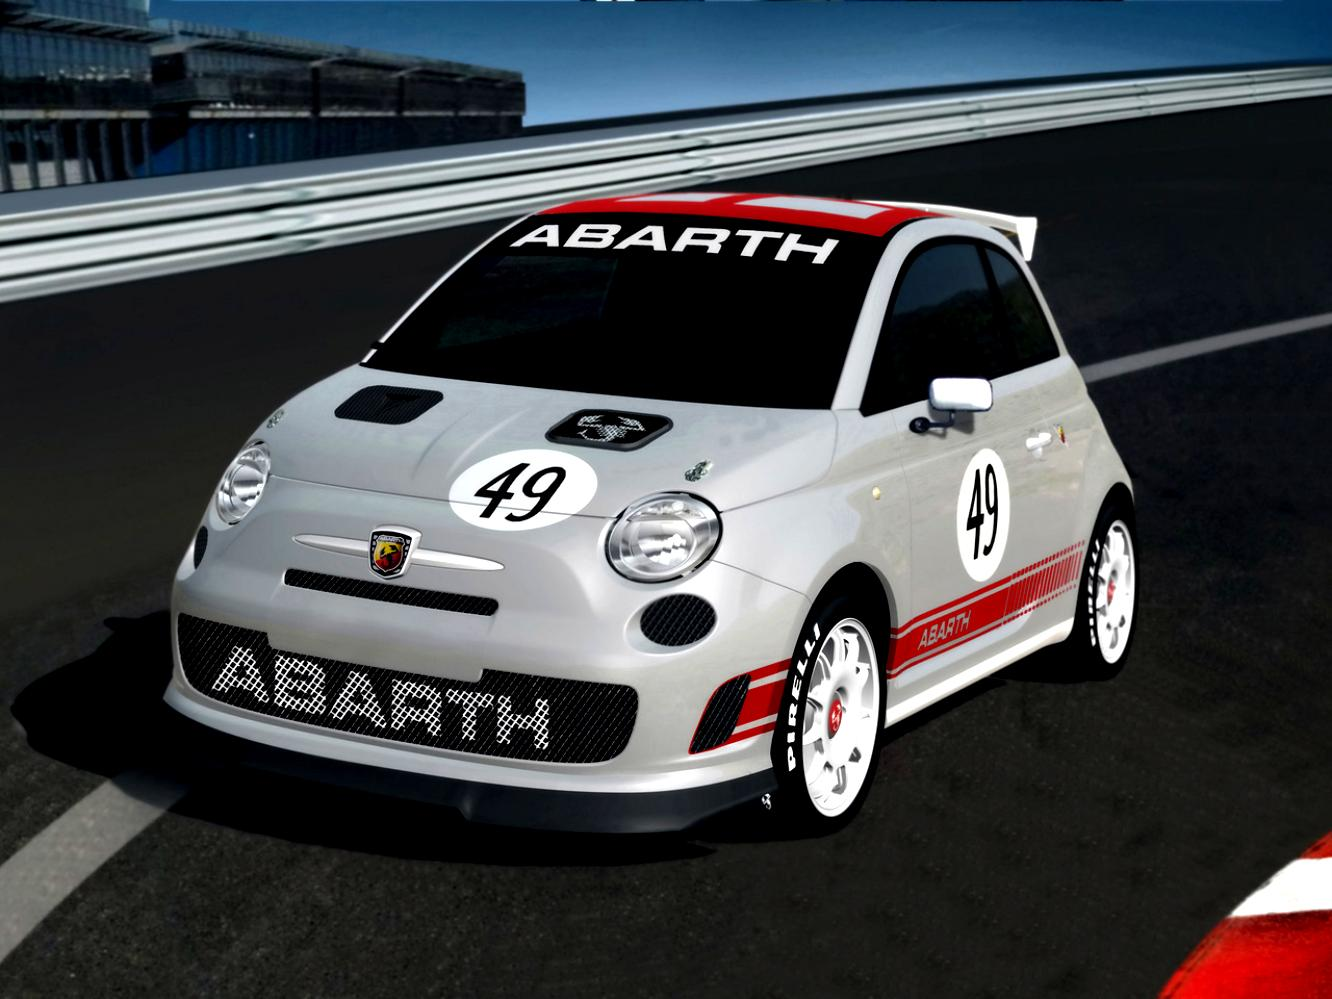 Fiat 500 Abarth 2008 Photos 8 On Motoimg Com